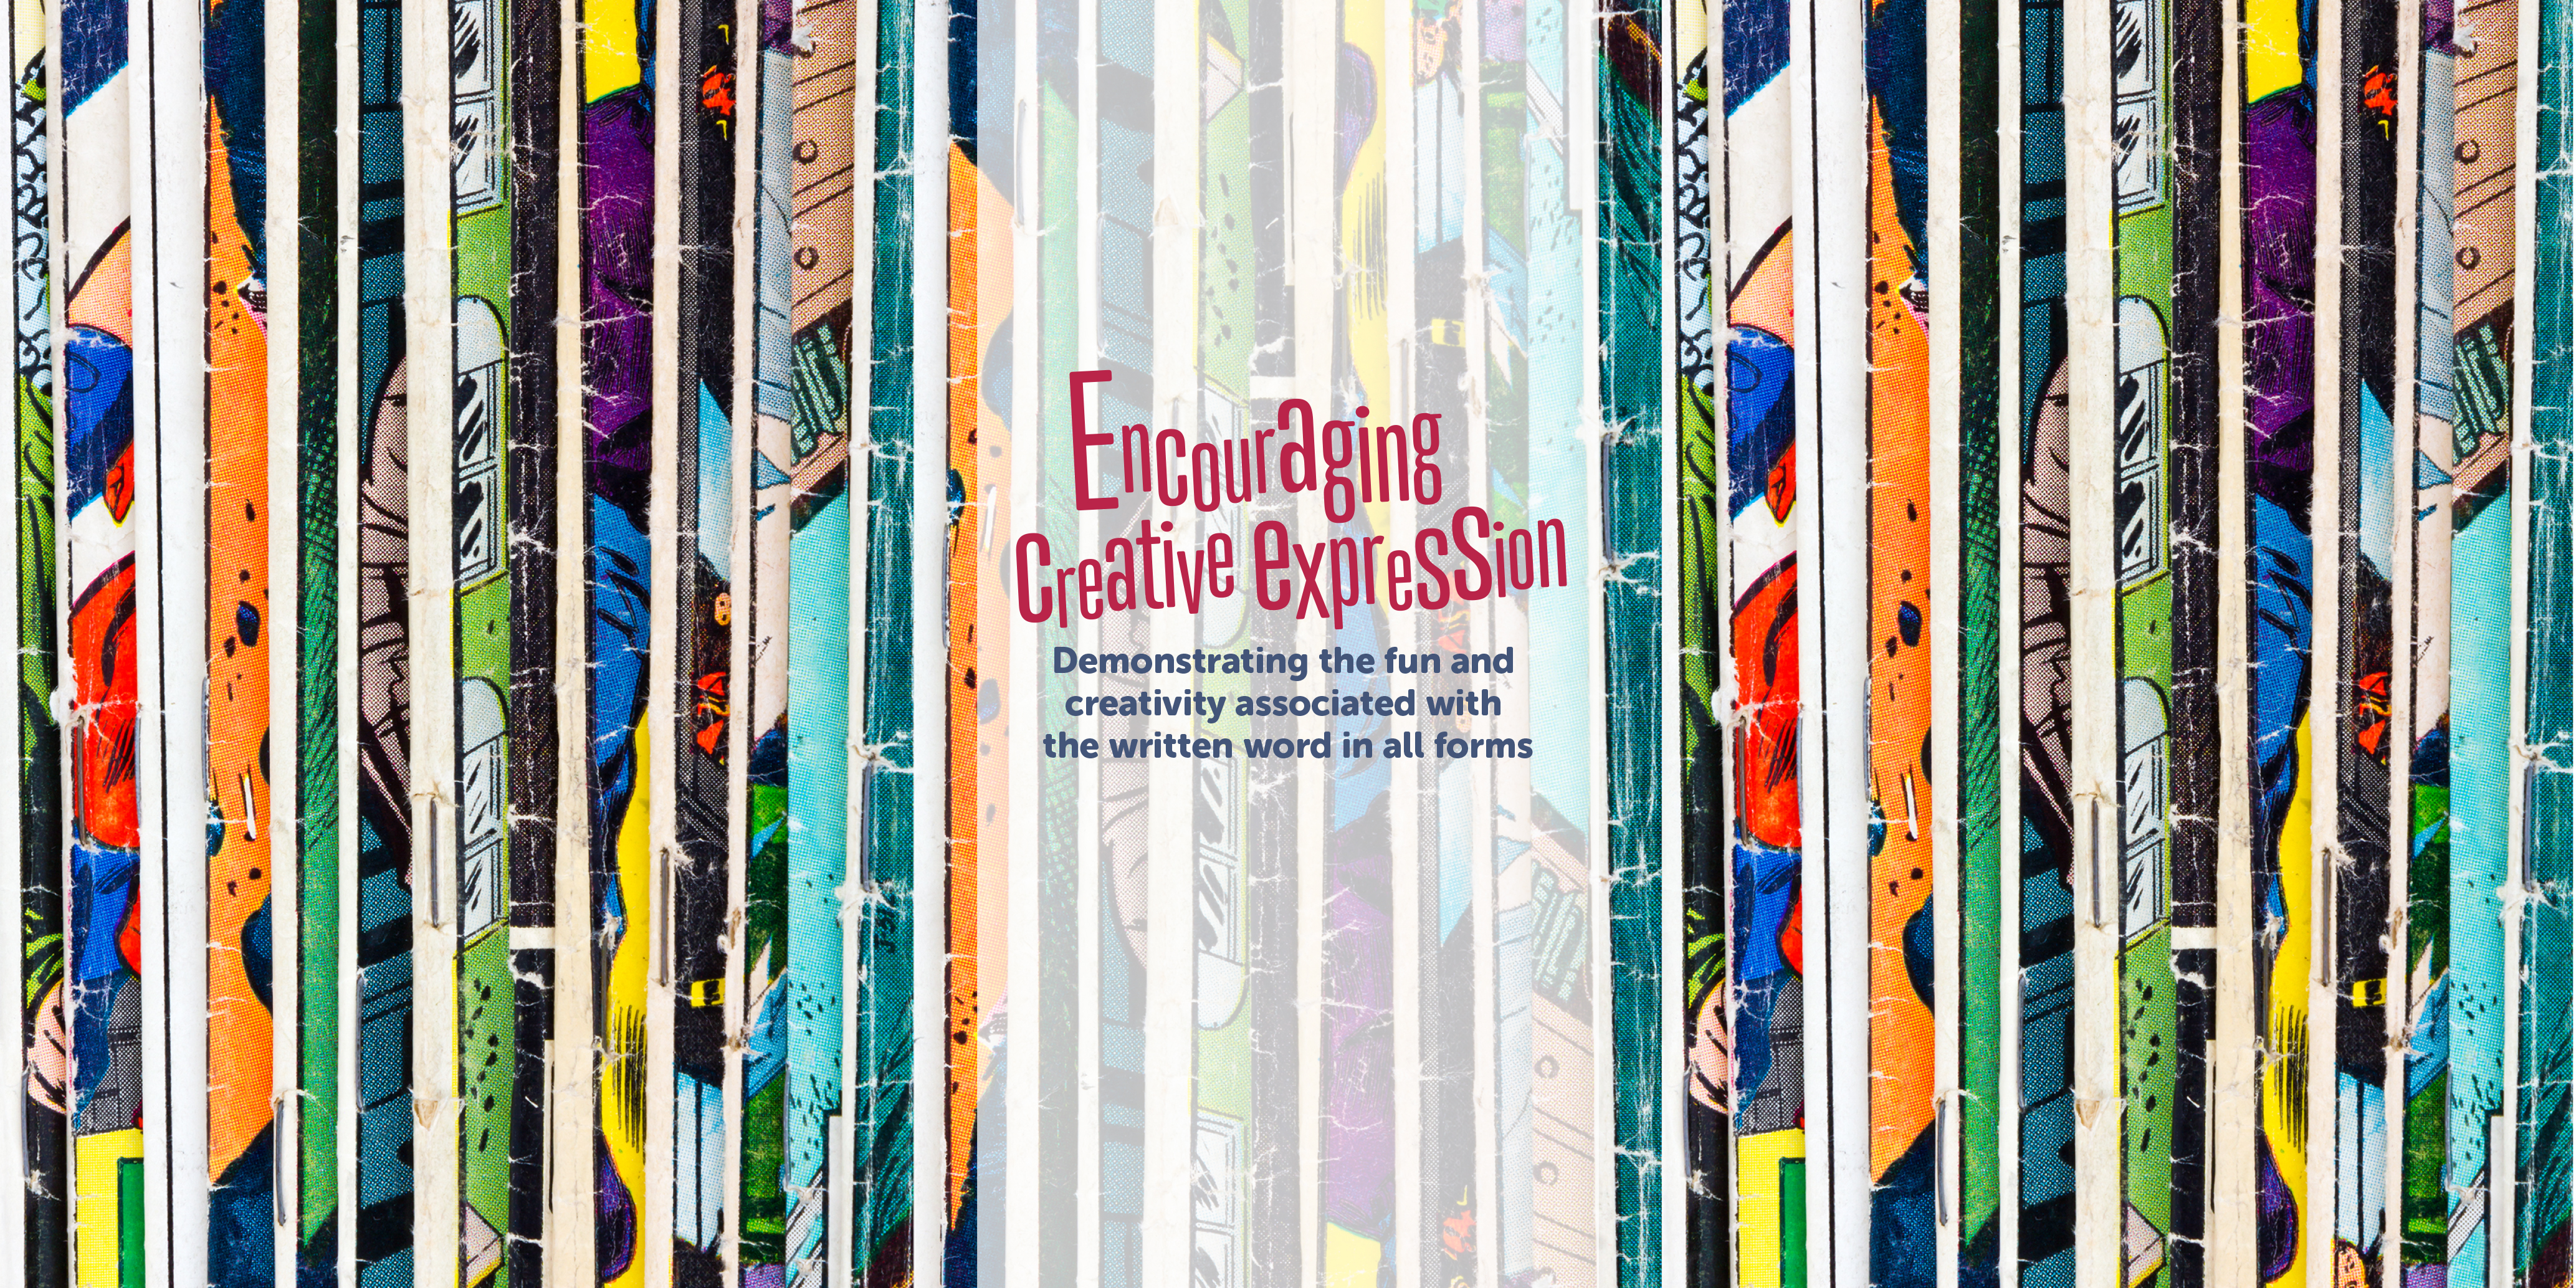 Encouraging creative expression